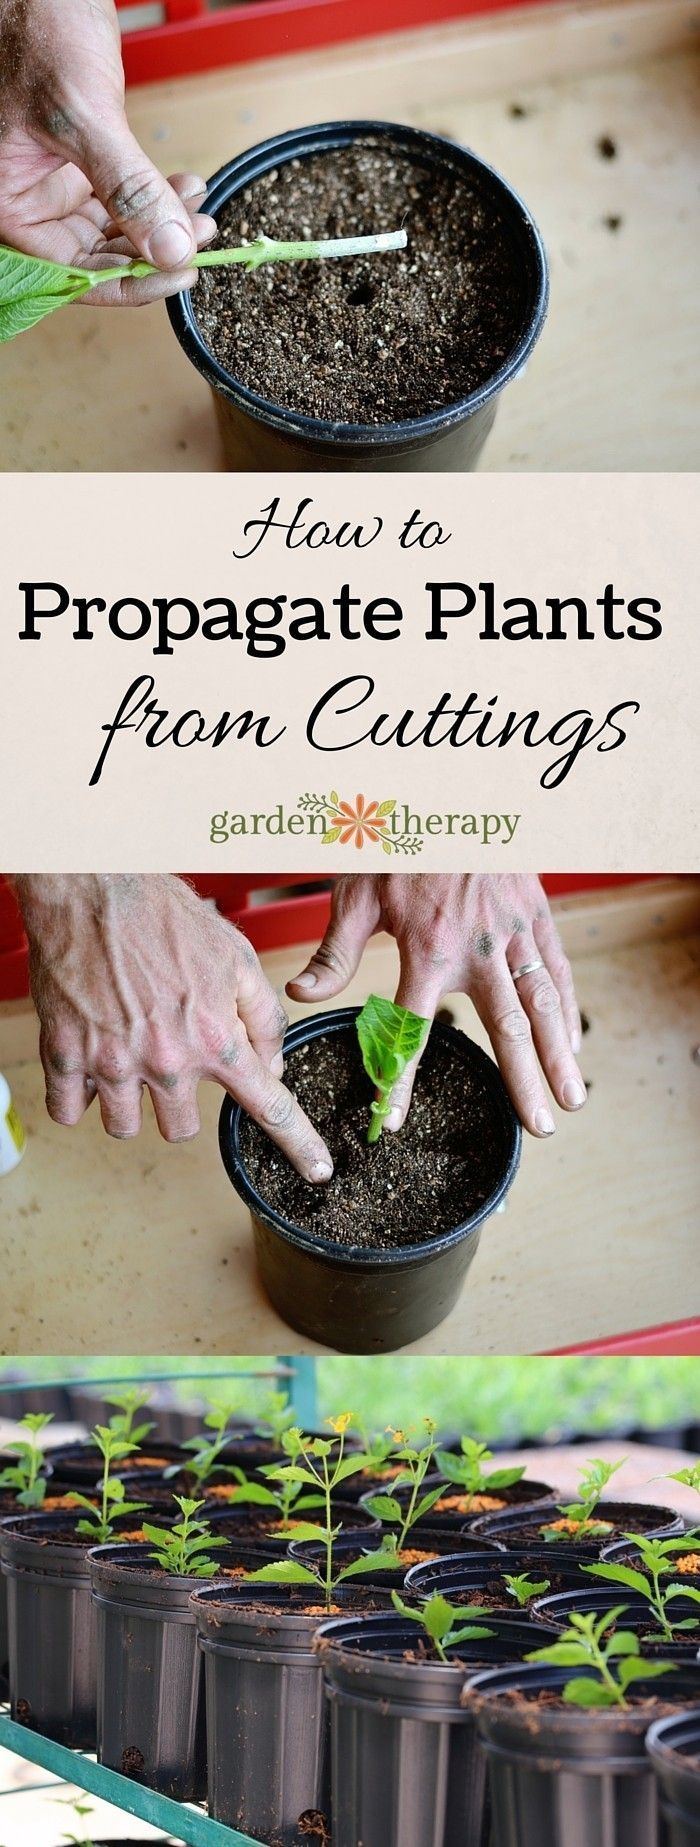 awesome Propagate Plants From Cuttings and Save Hundreds of Dollars (Heck, You Could Even Make Money!) - Garden Therapy